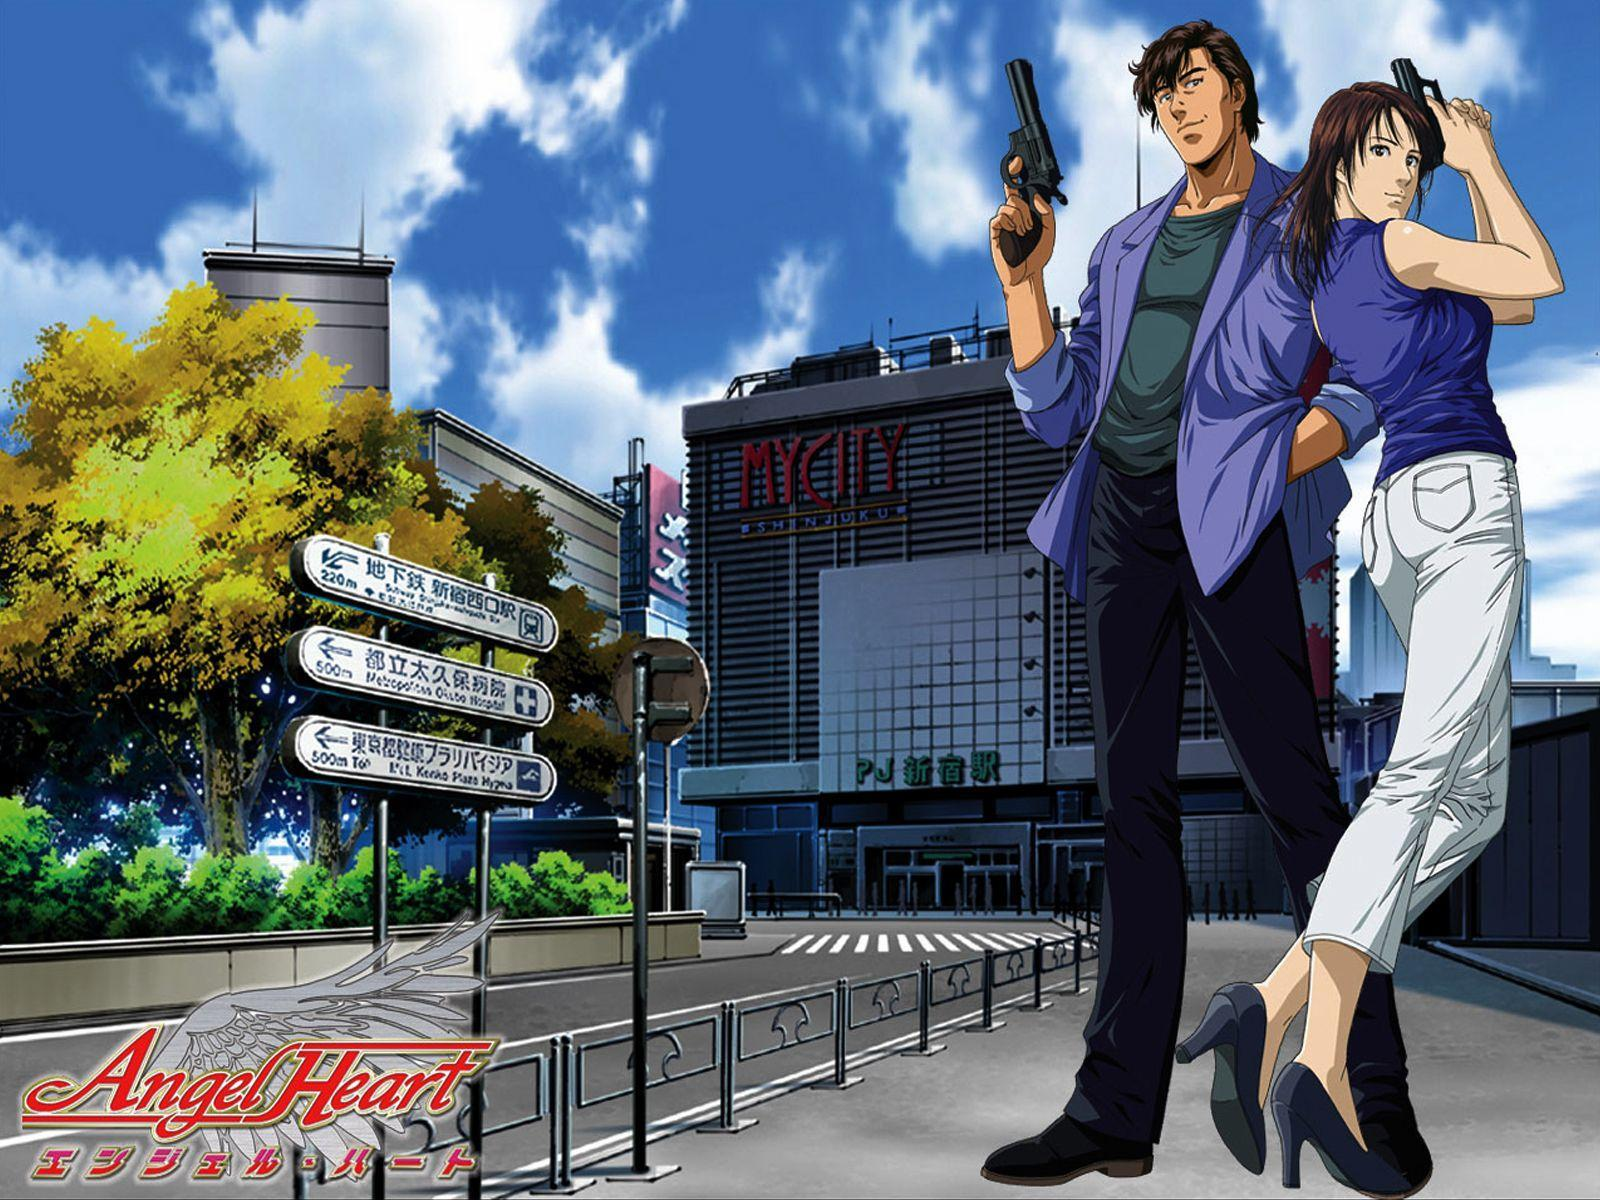 Heart transplant and detective anime like The Detective is already Dead, Angel Heart